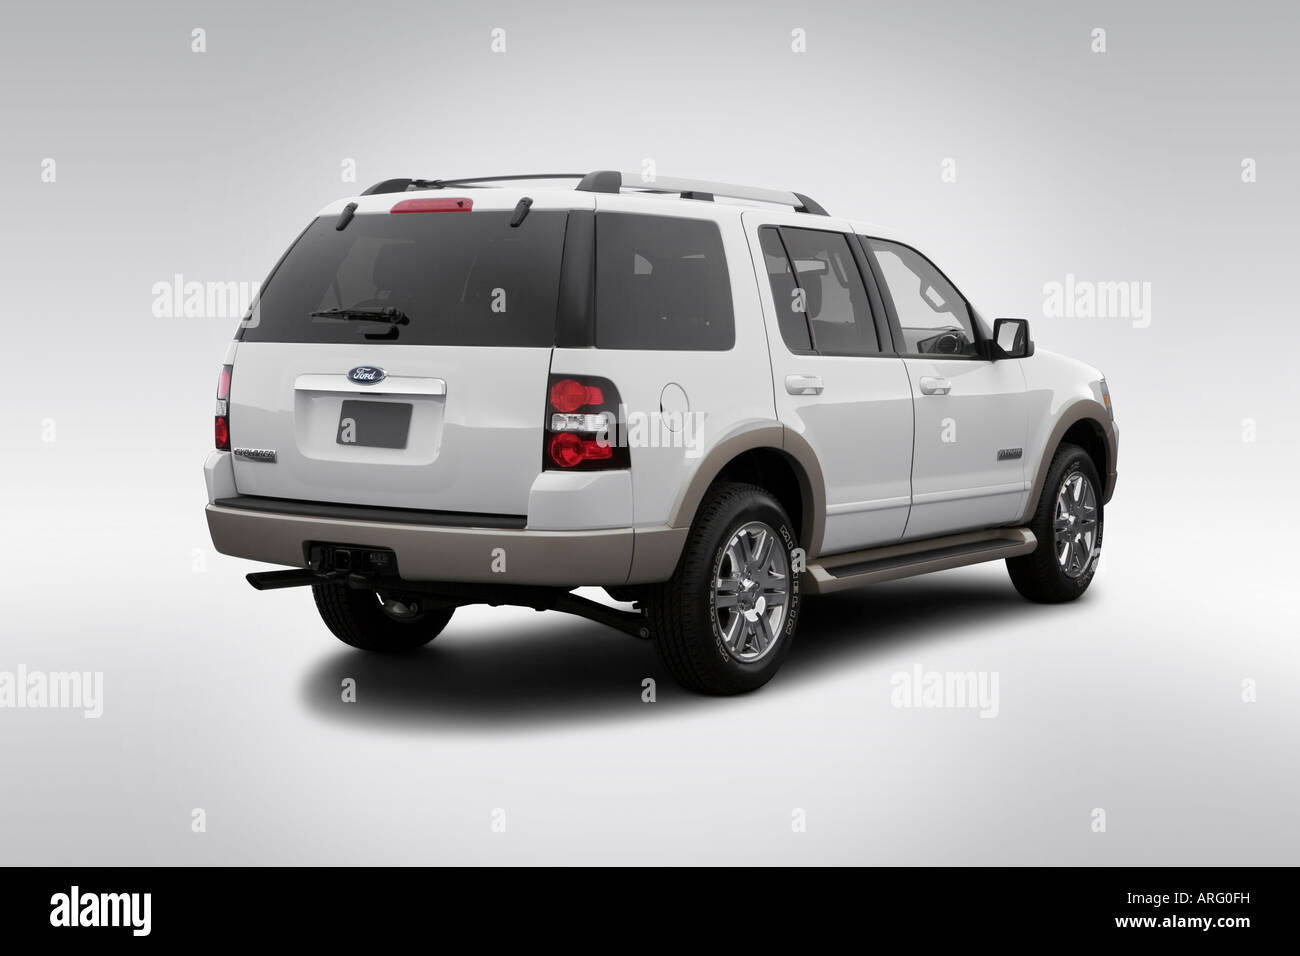 2007 ford explorer eddie bauer in white rear angle view